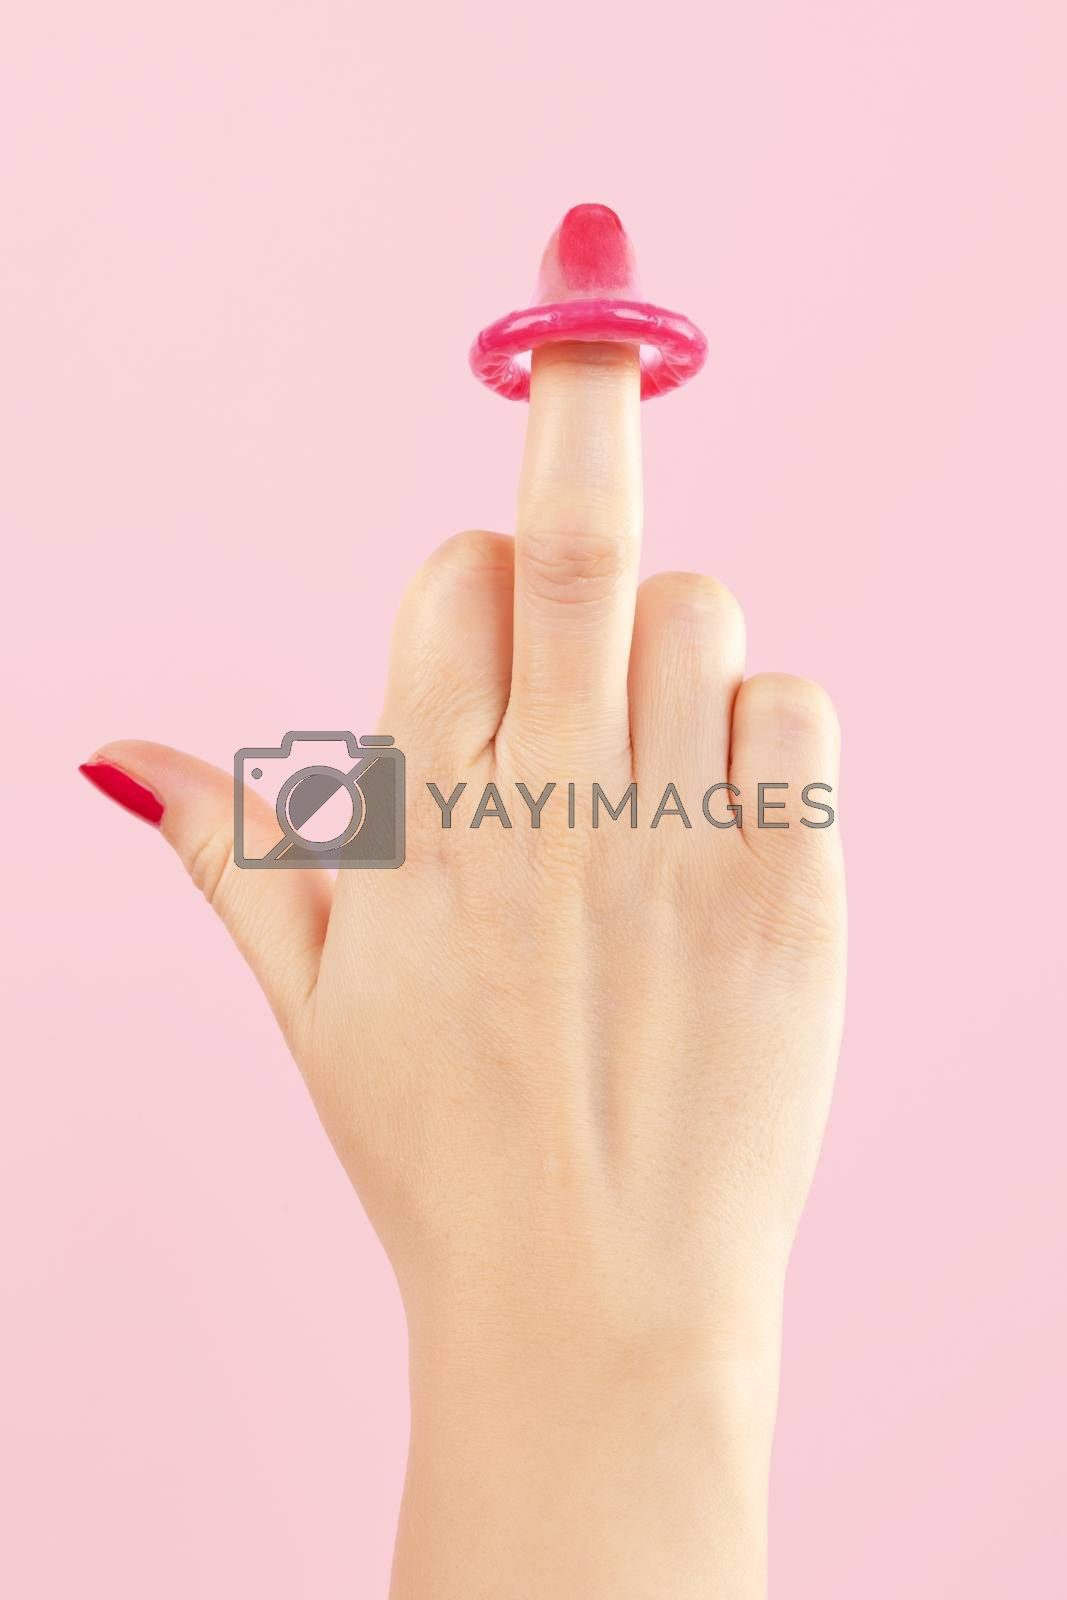 Female hand with red nails holding pink condom isolated on pink background. Safe sex and birth control concept.